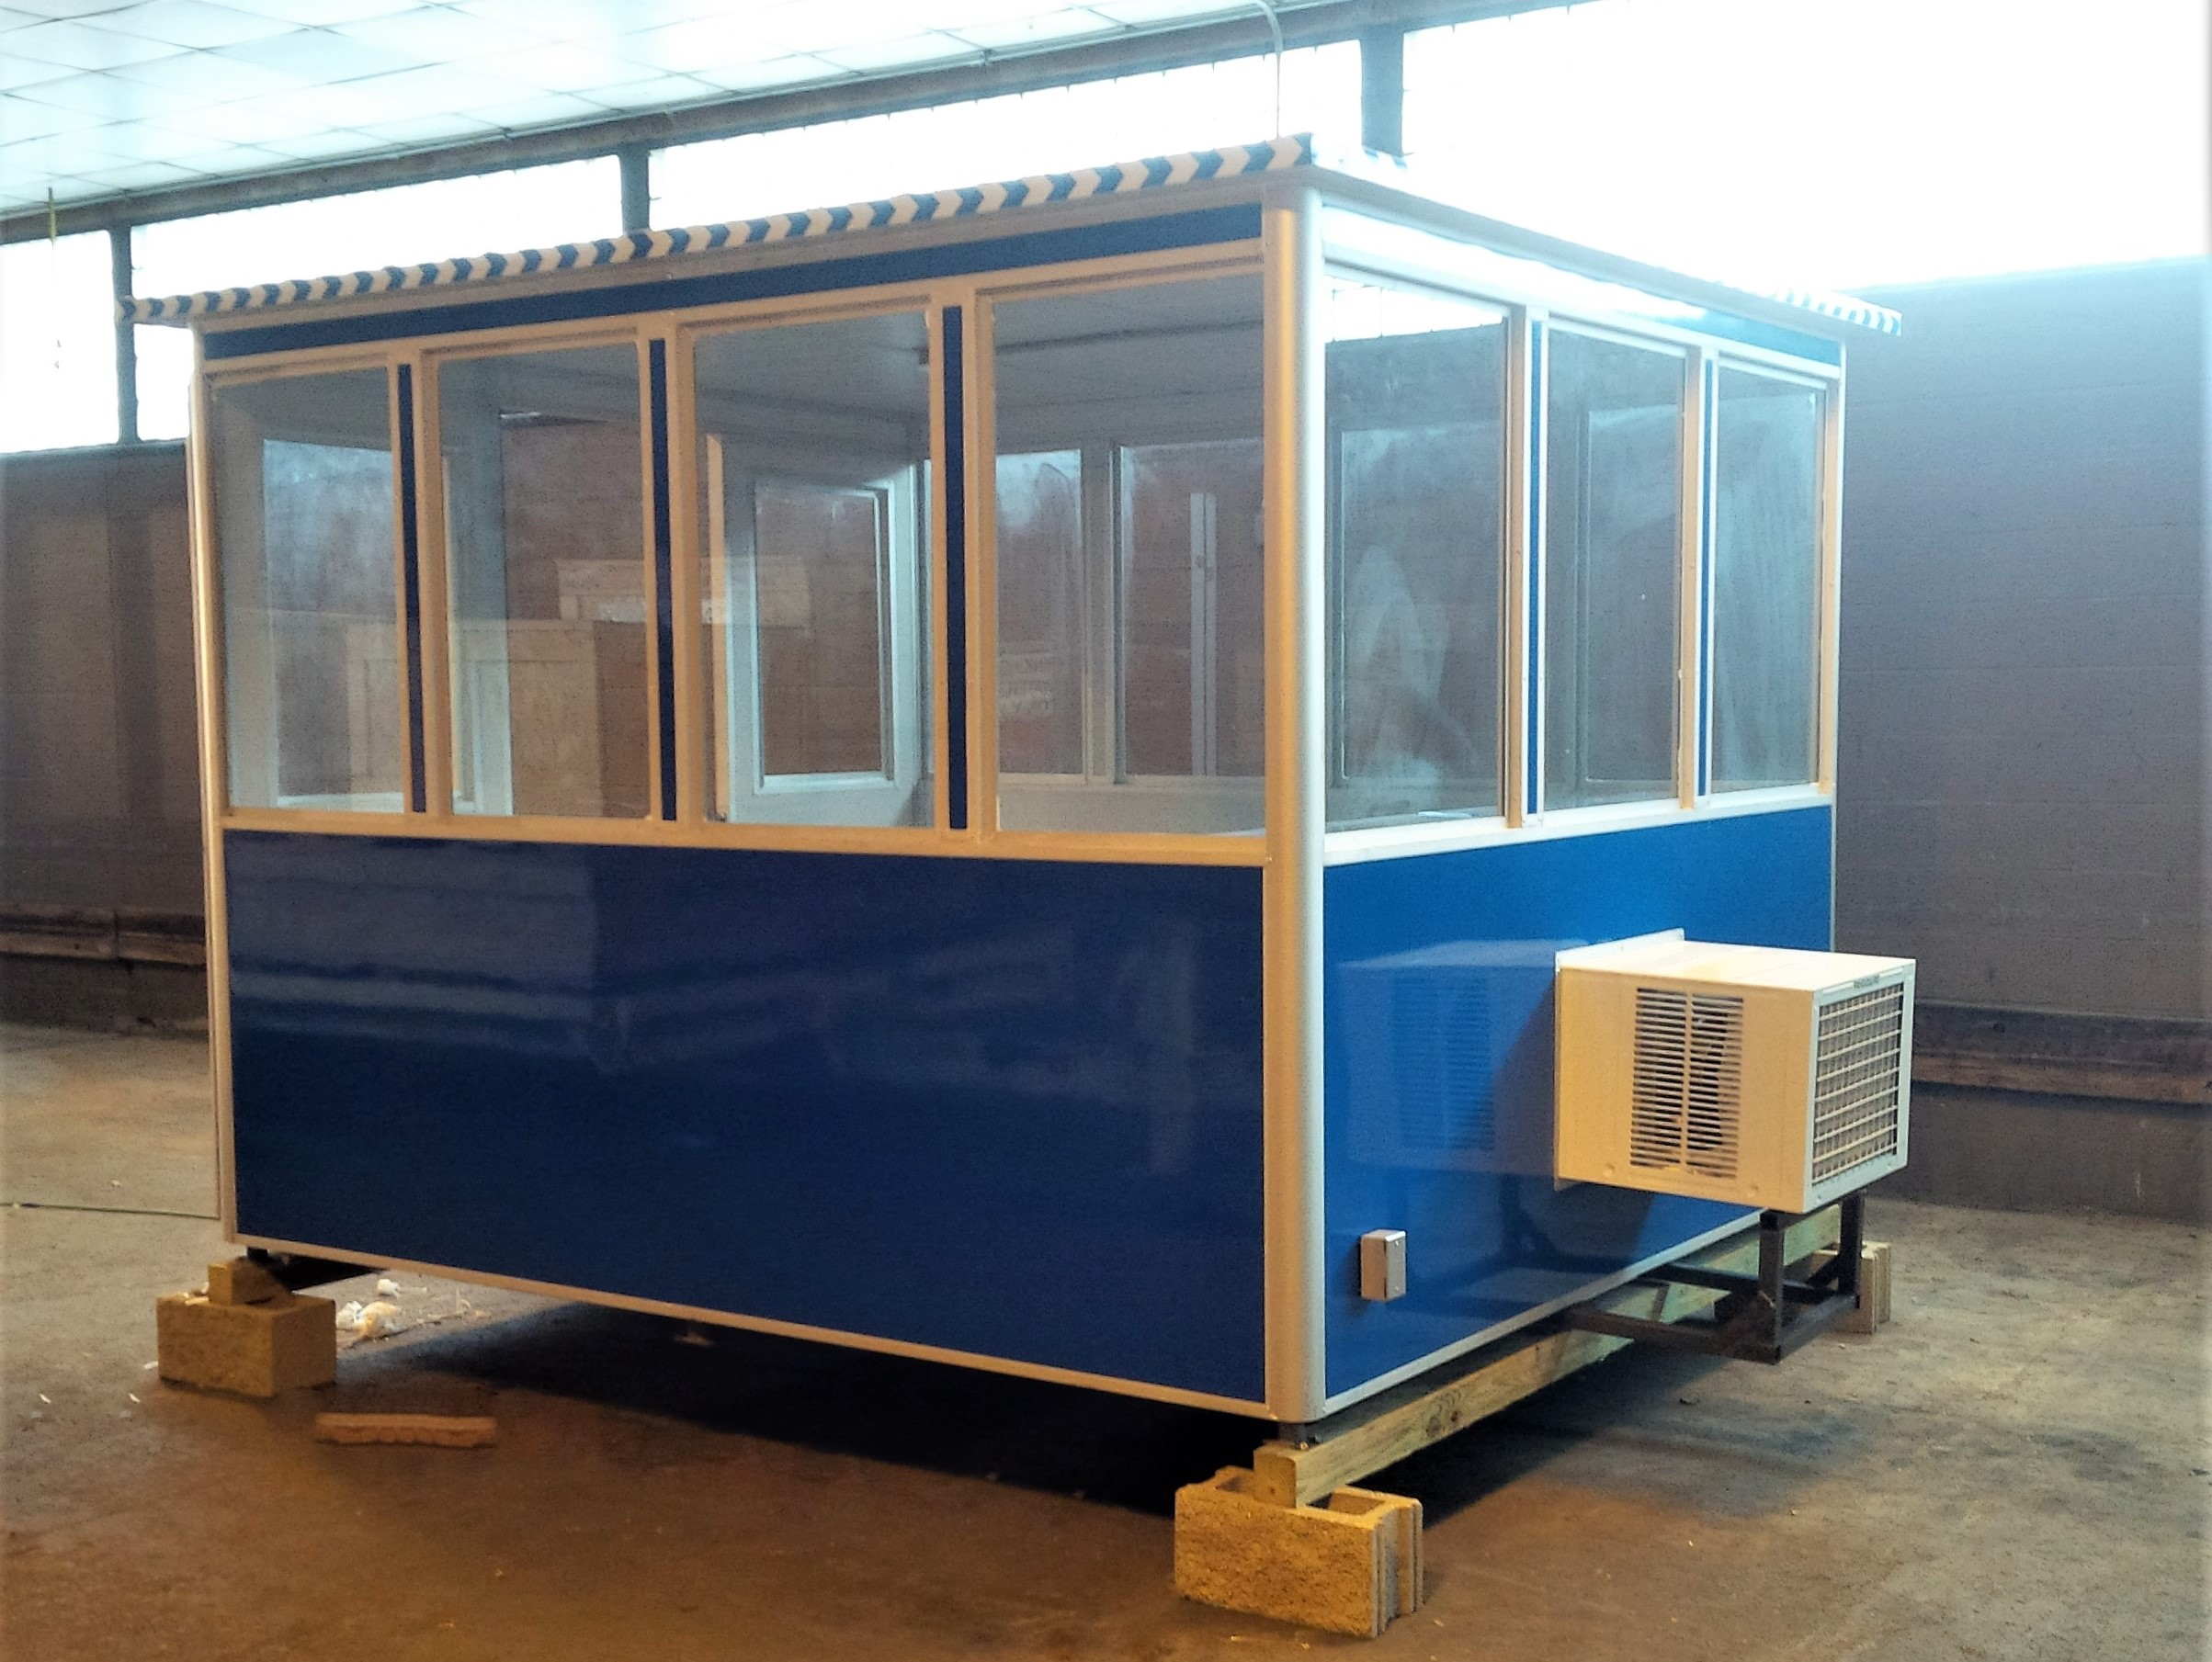 8x10 Airport Security Booth in Cincinnati, OH with Fixed Windows and AC